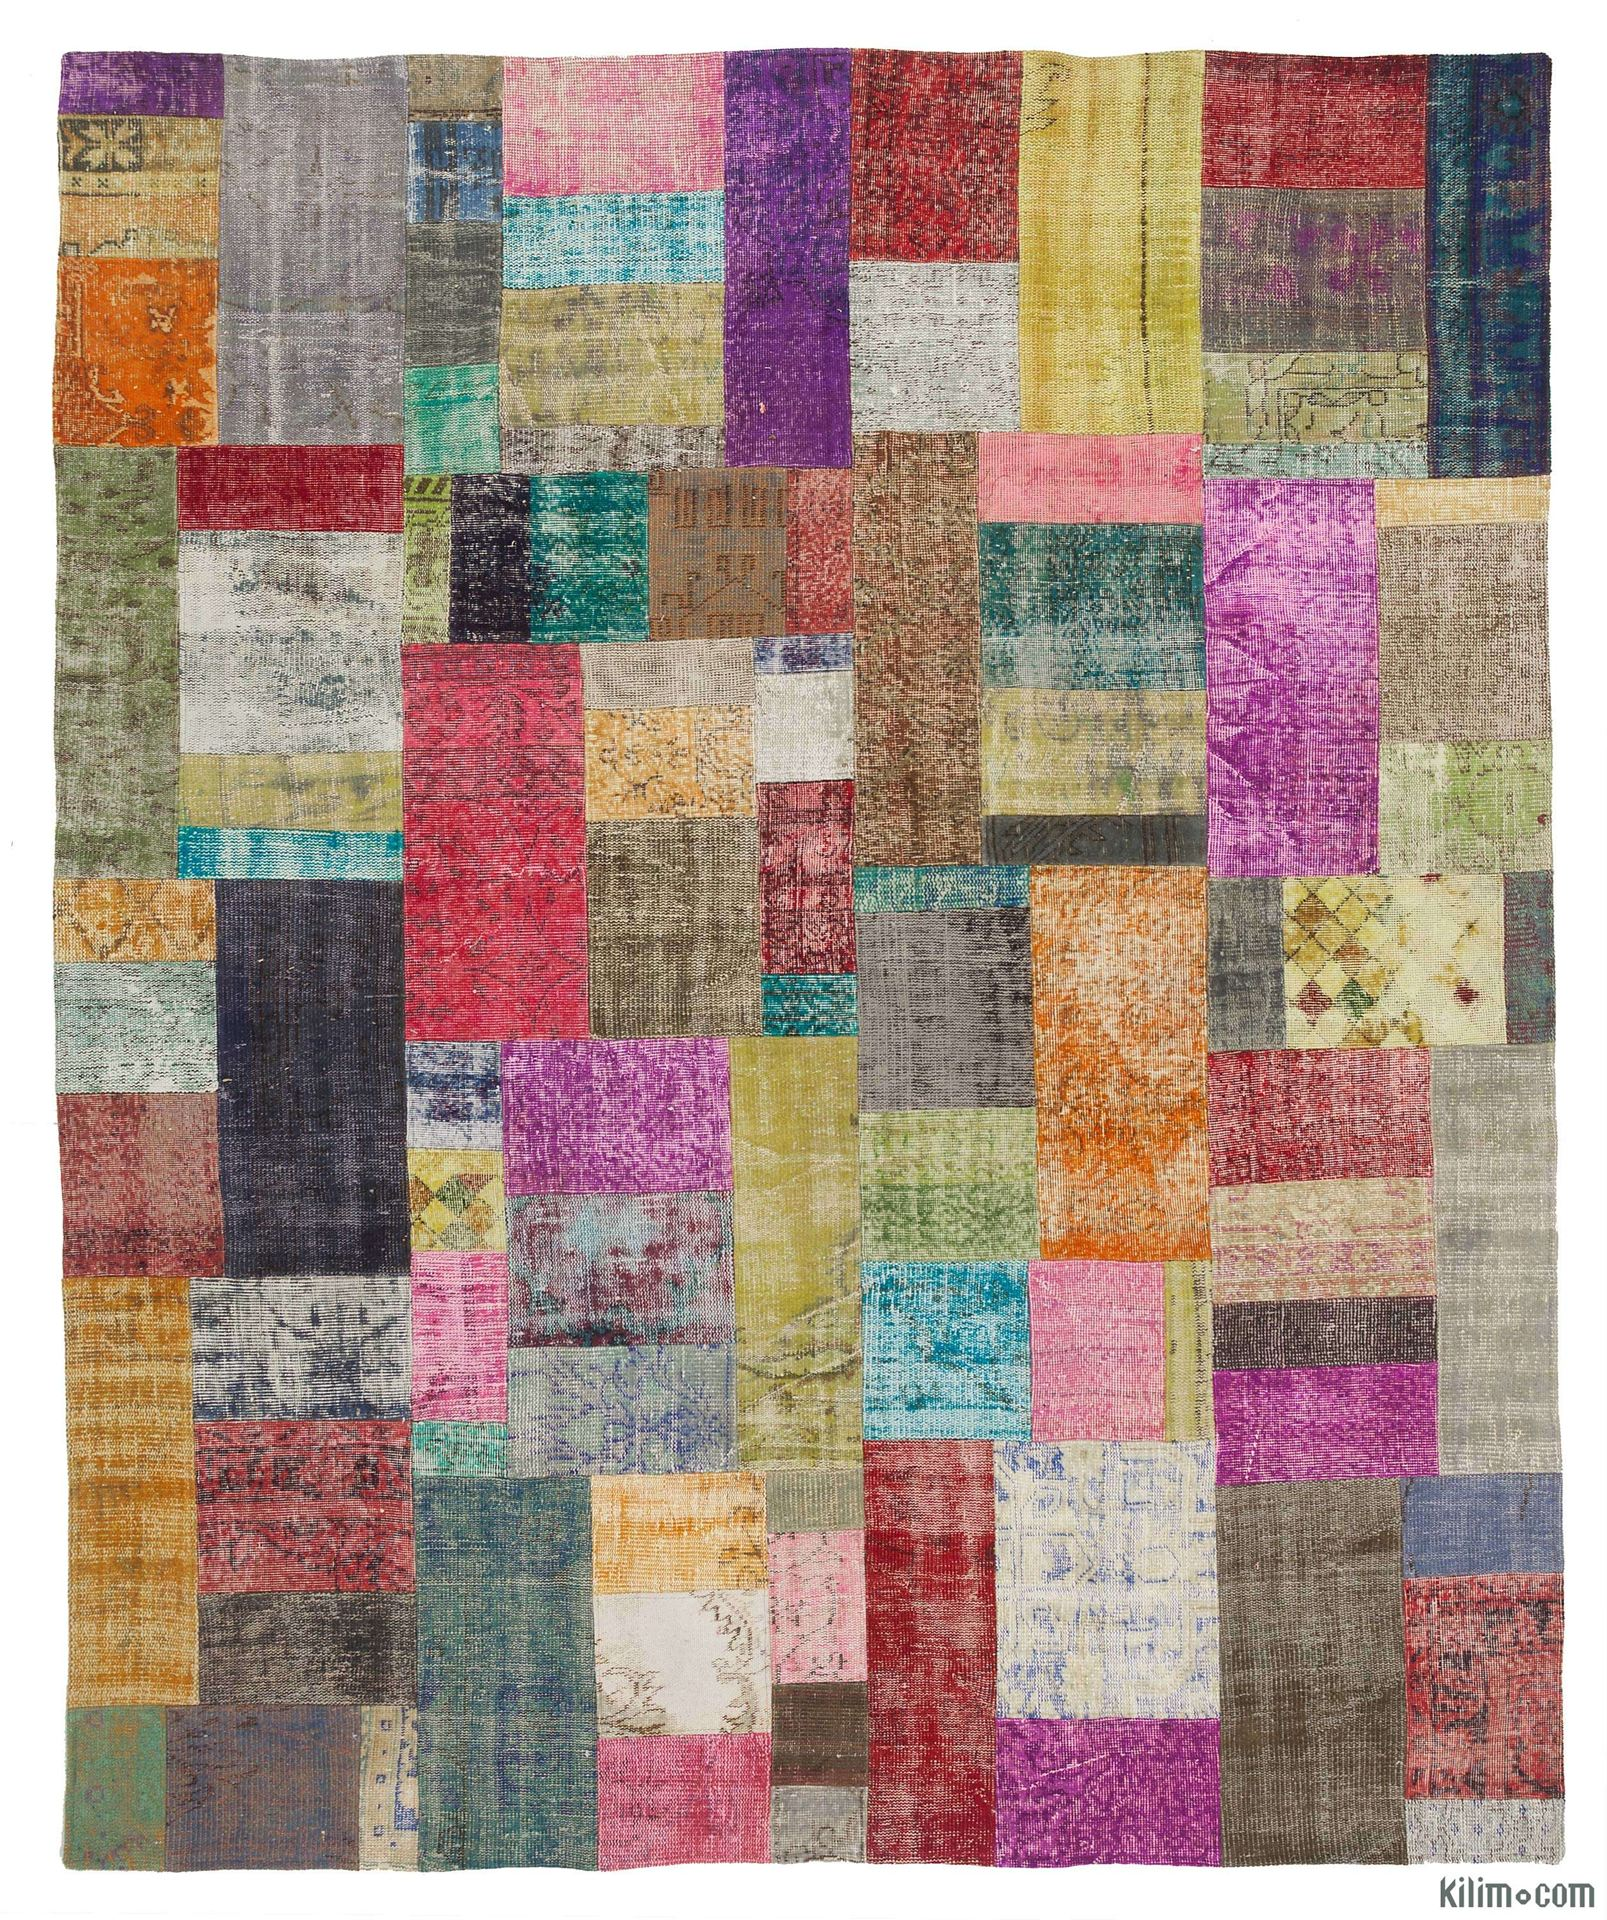 K0010675 - Over-dyed Turkish Patchwork Rug. Overdyed Vintage Rugs ... : quilt rugs - Adamdwight.com